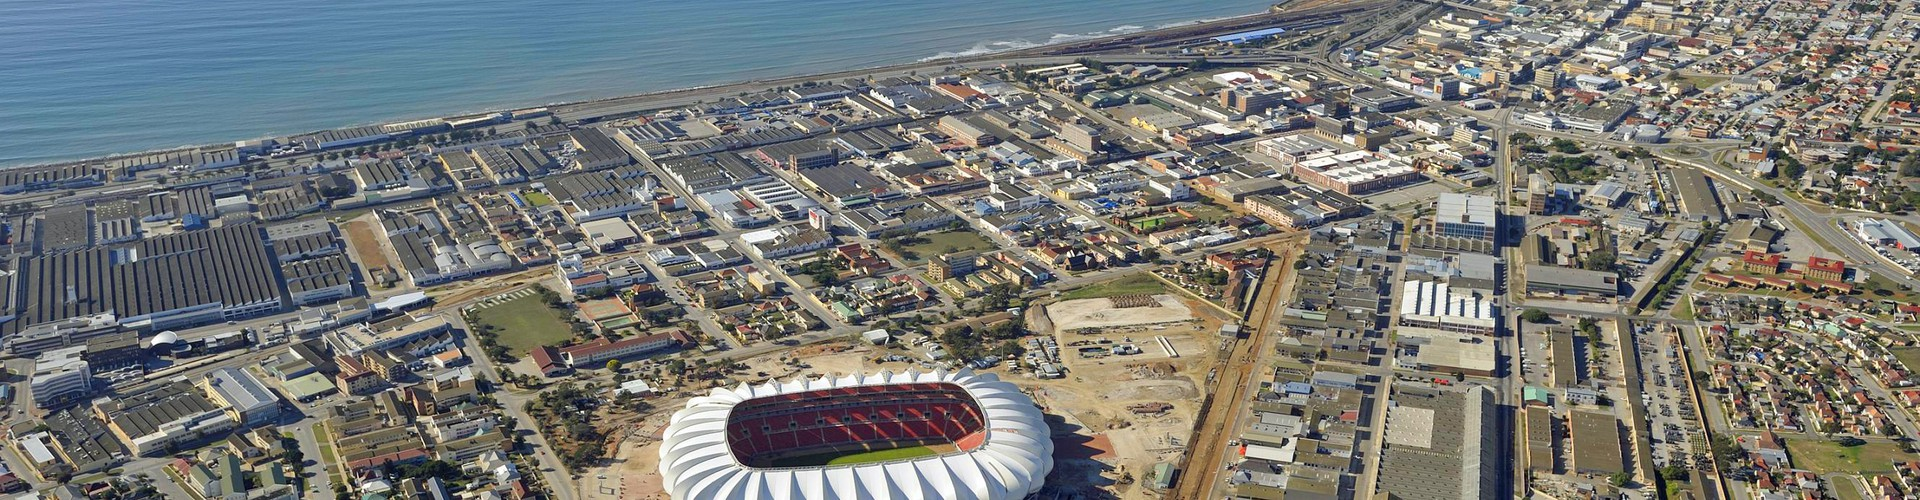 Port Elizabeth, South Africa (Credit: Ngrund/Panoramico)